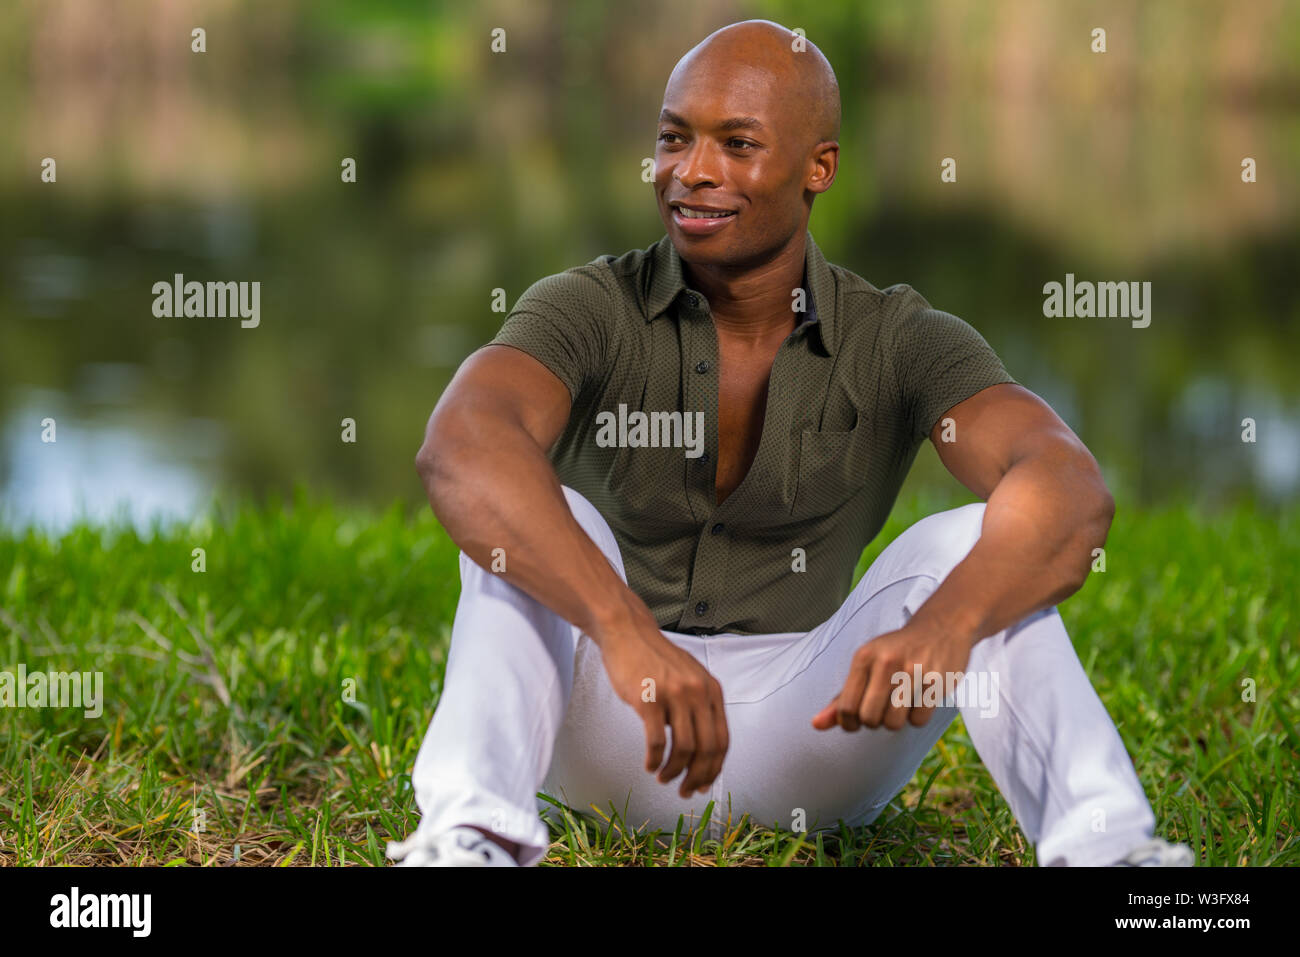 Portrait of a fashionable African American man sitting on grass in the park. Man is smiling and looking to his right - Stock Image